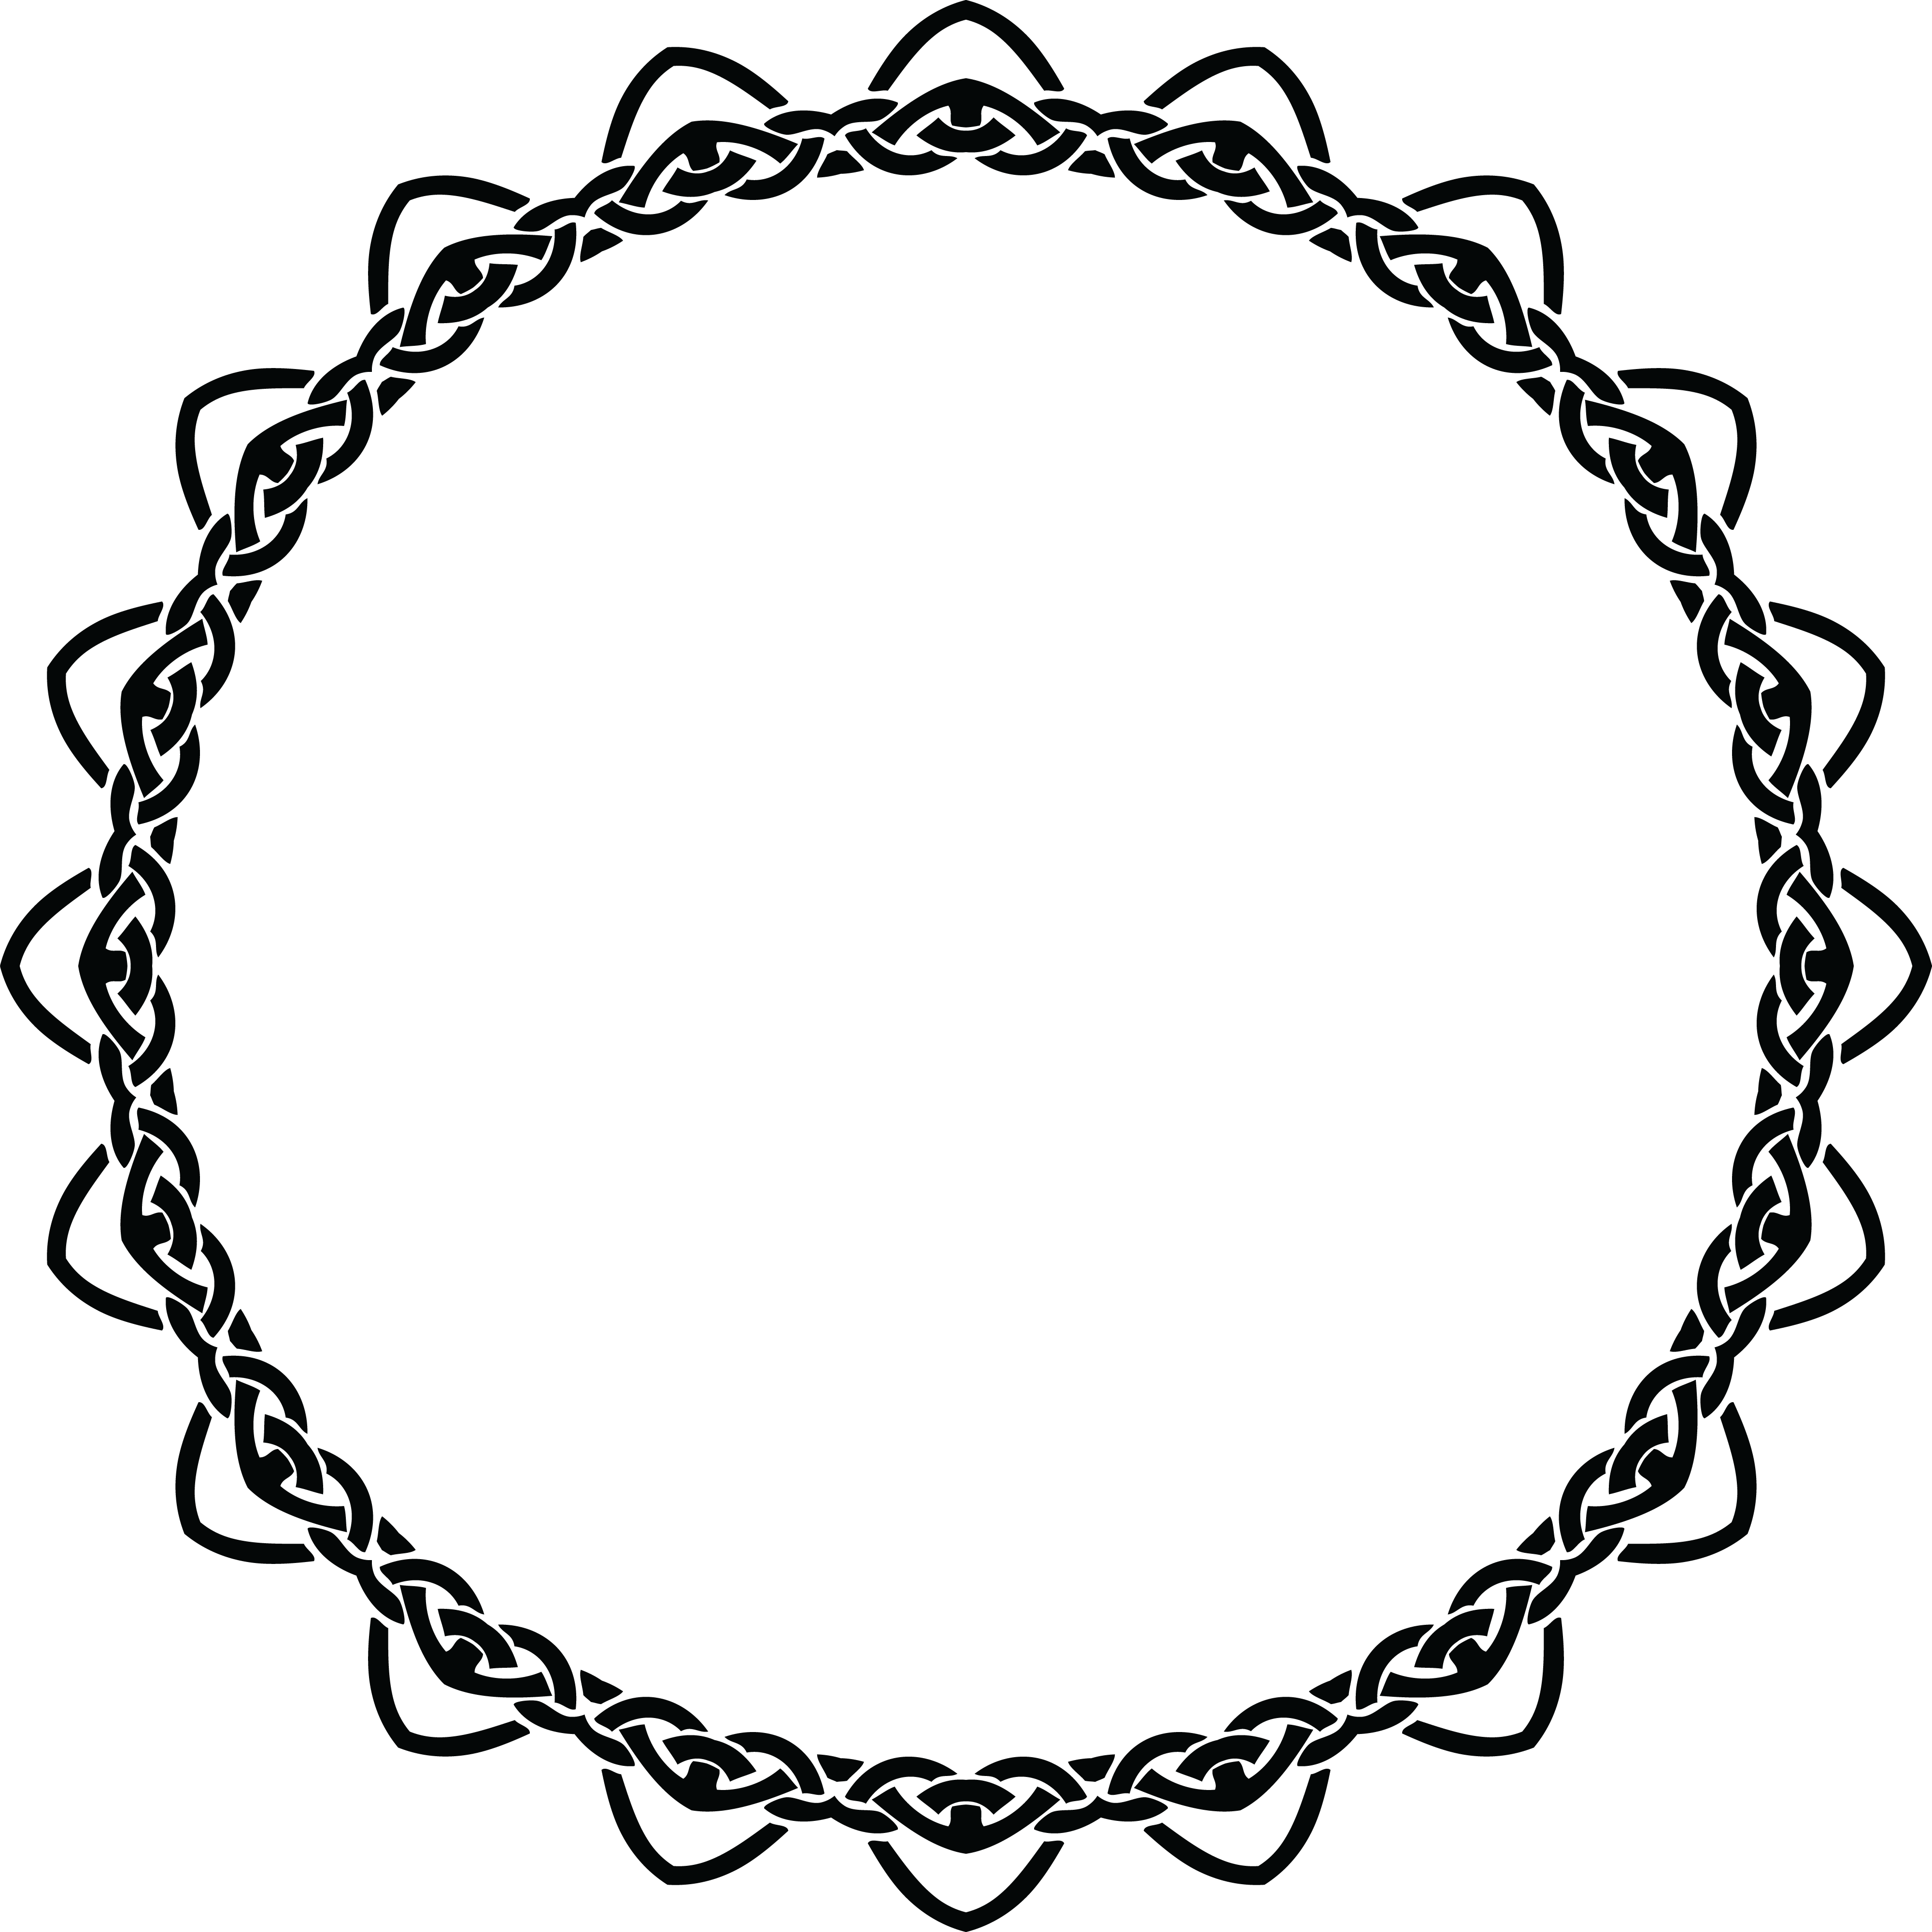 Free Clipart Of A Celtic Round Frame Border Design Element In Black And White Knots 0001344